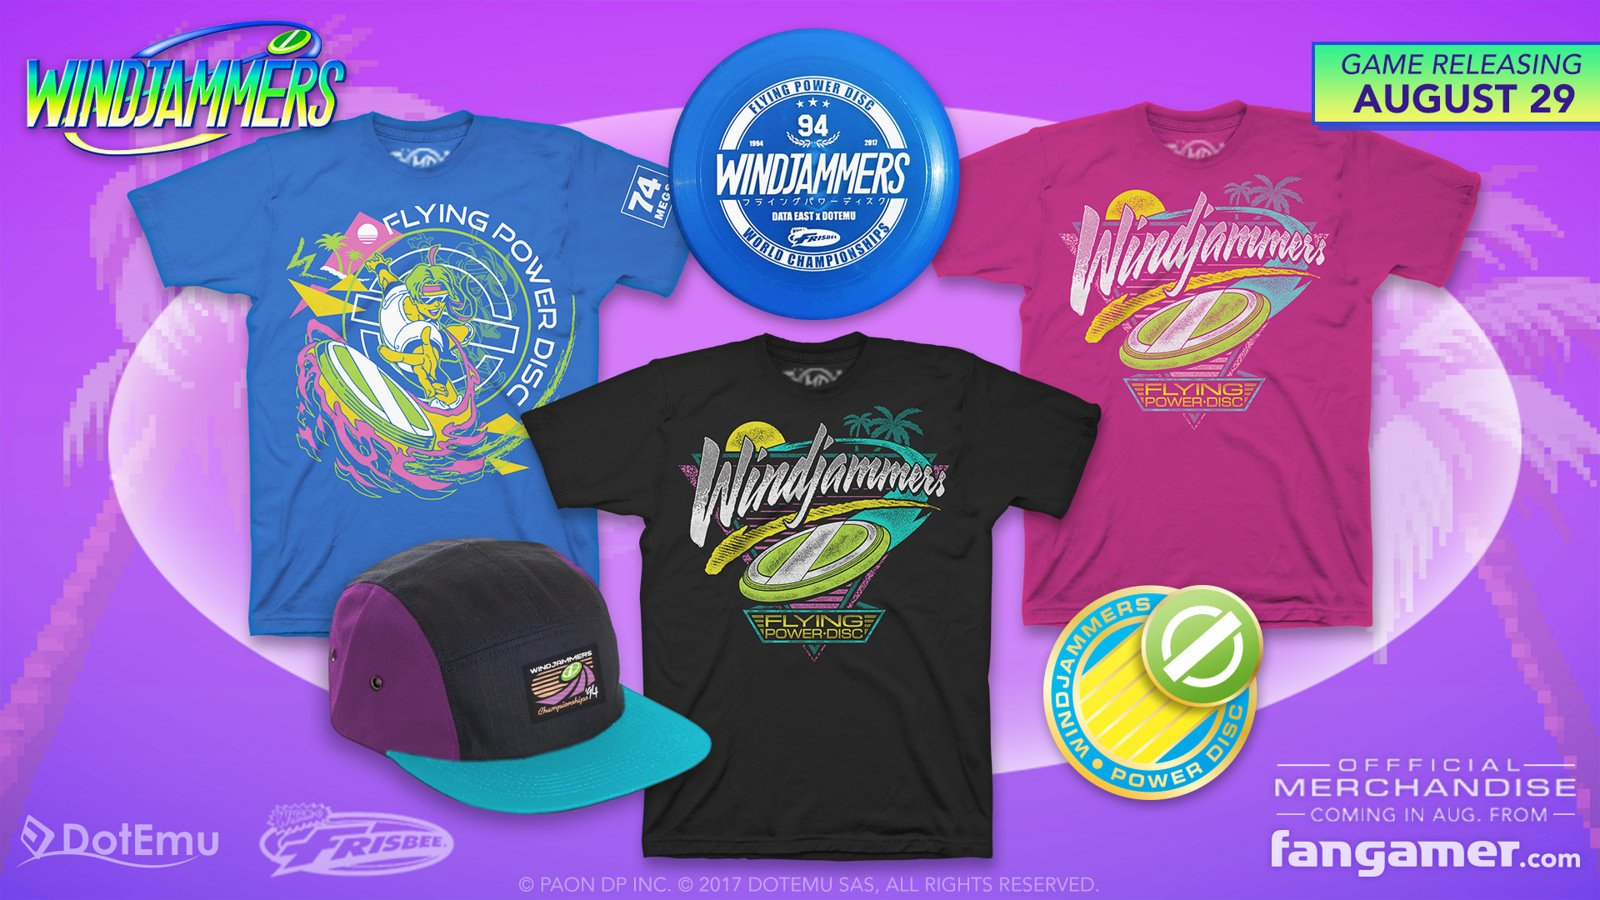 DotEmu's release includes tie-in merchandise from Fangamer, echoing a home-grown run for Windjammers tank tops by 1CC Shirts in 2015.